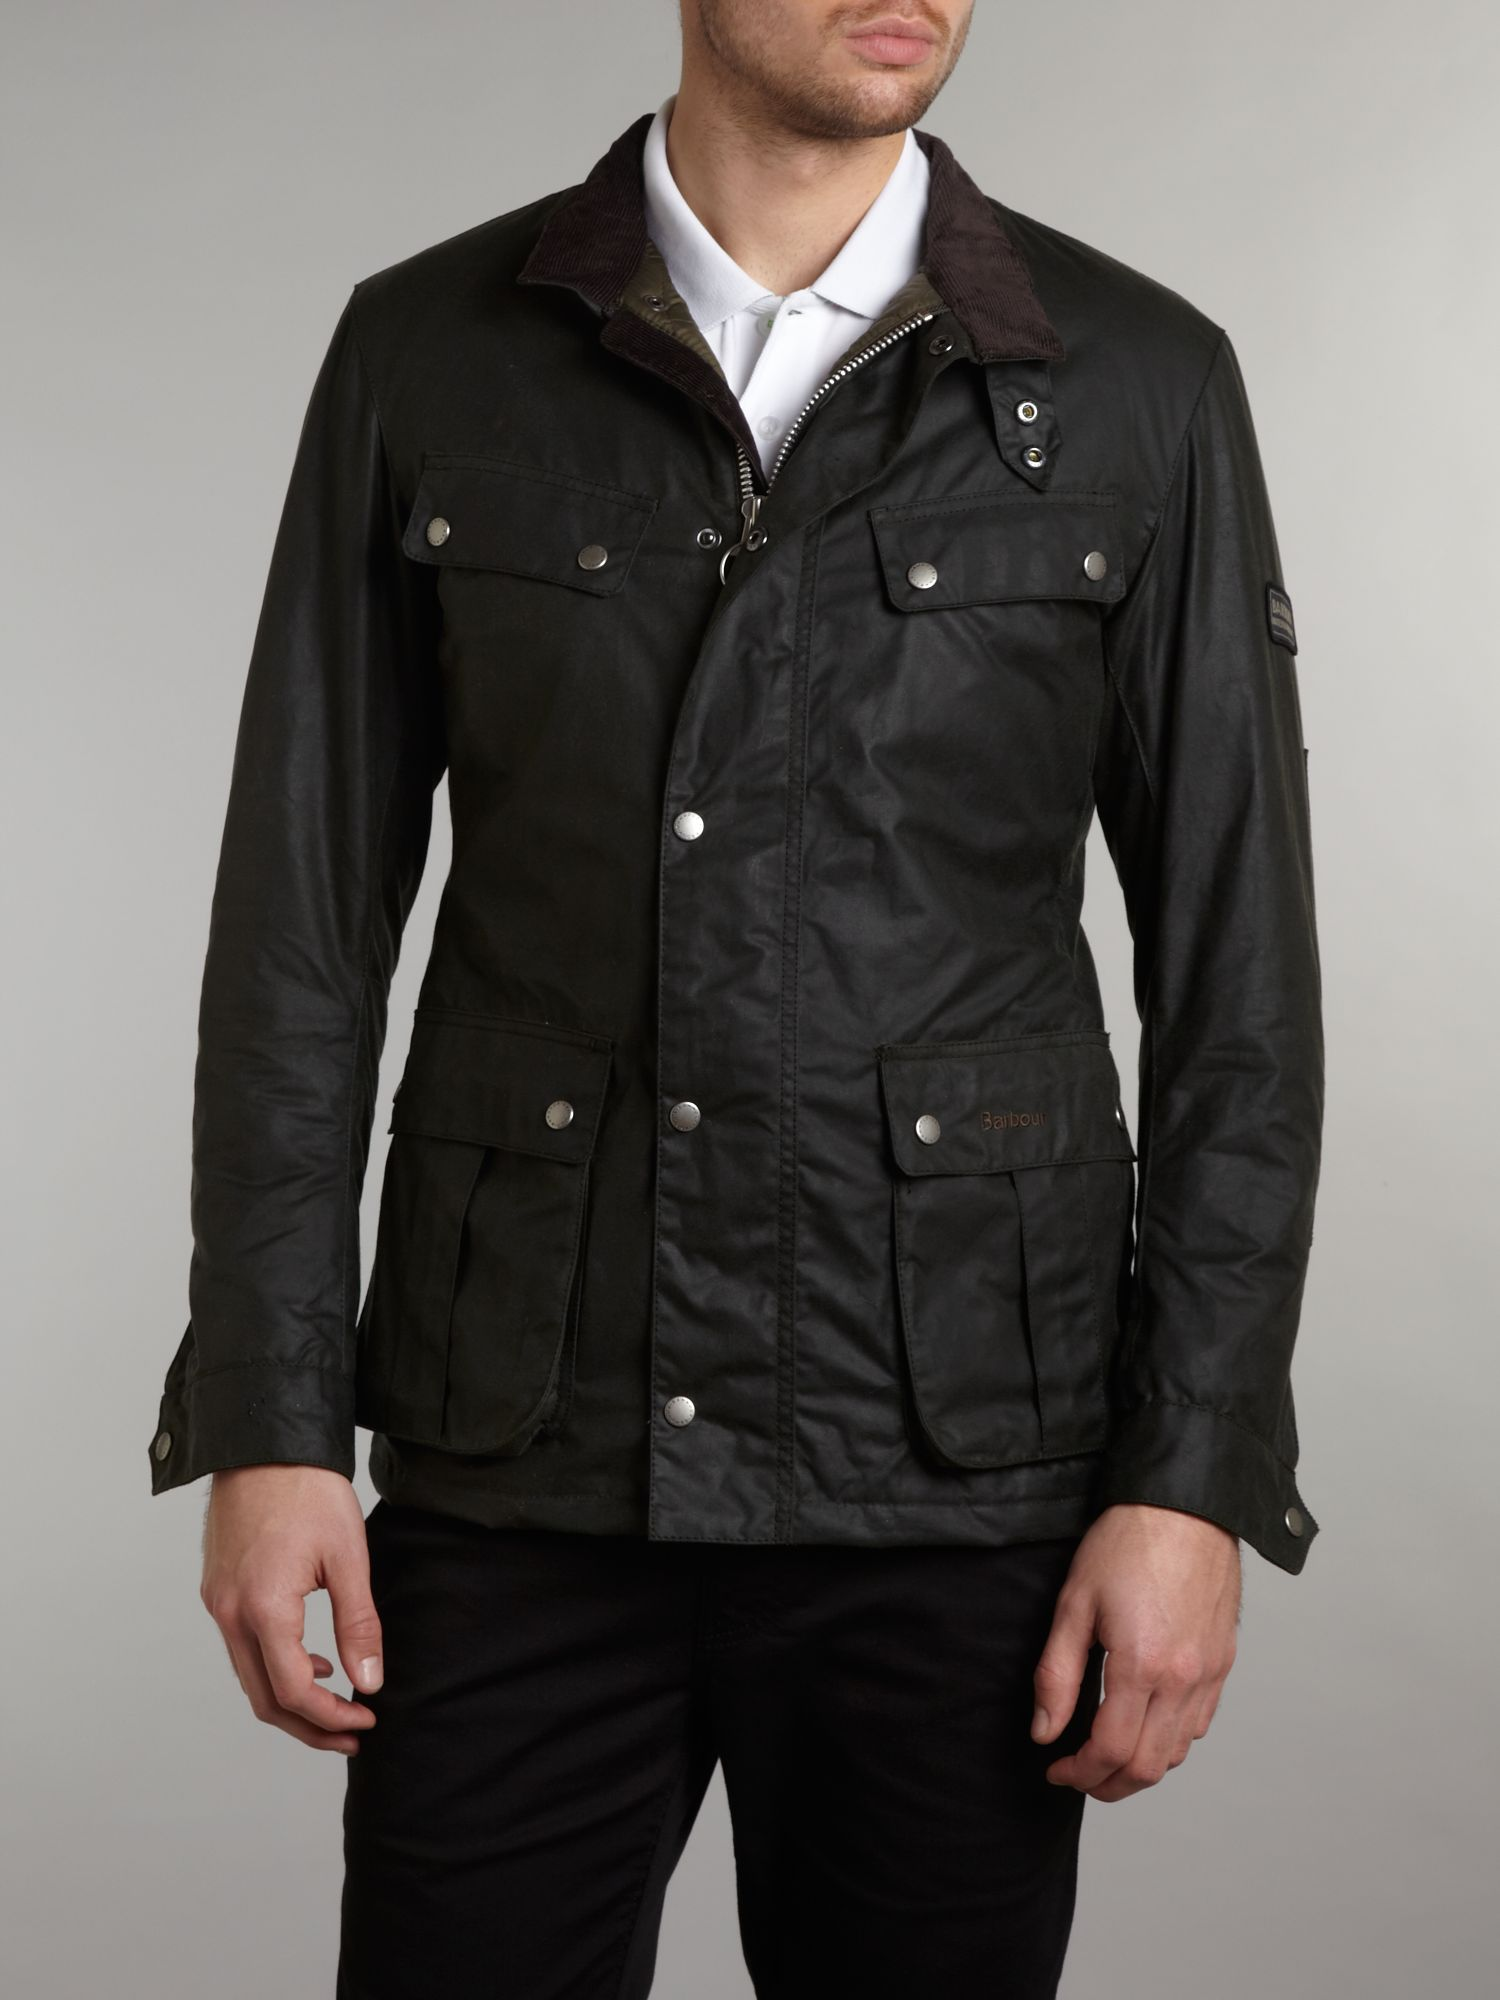 Barbour Enfield Wax Jacket Peninsula Conflict Resolution